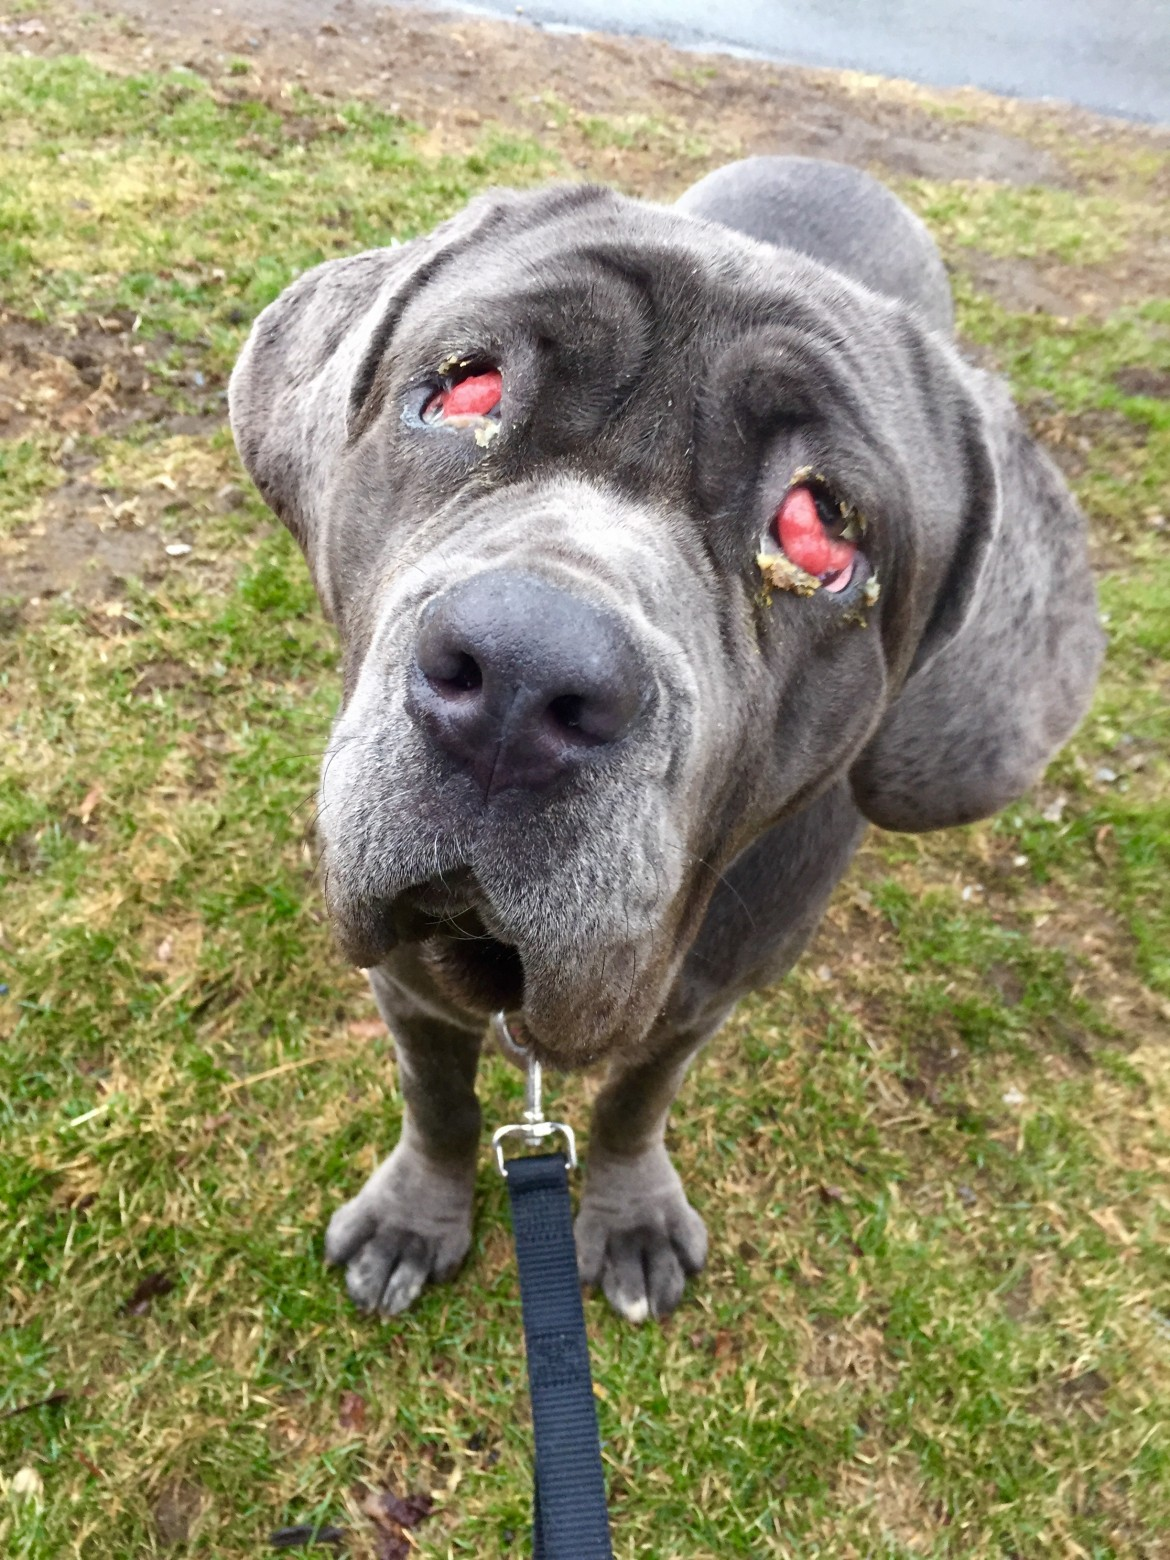 Zoe had an infection of the third eyelid, known as'cherry eye.'